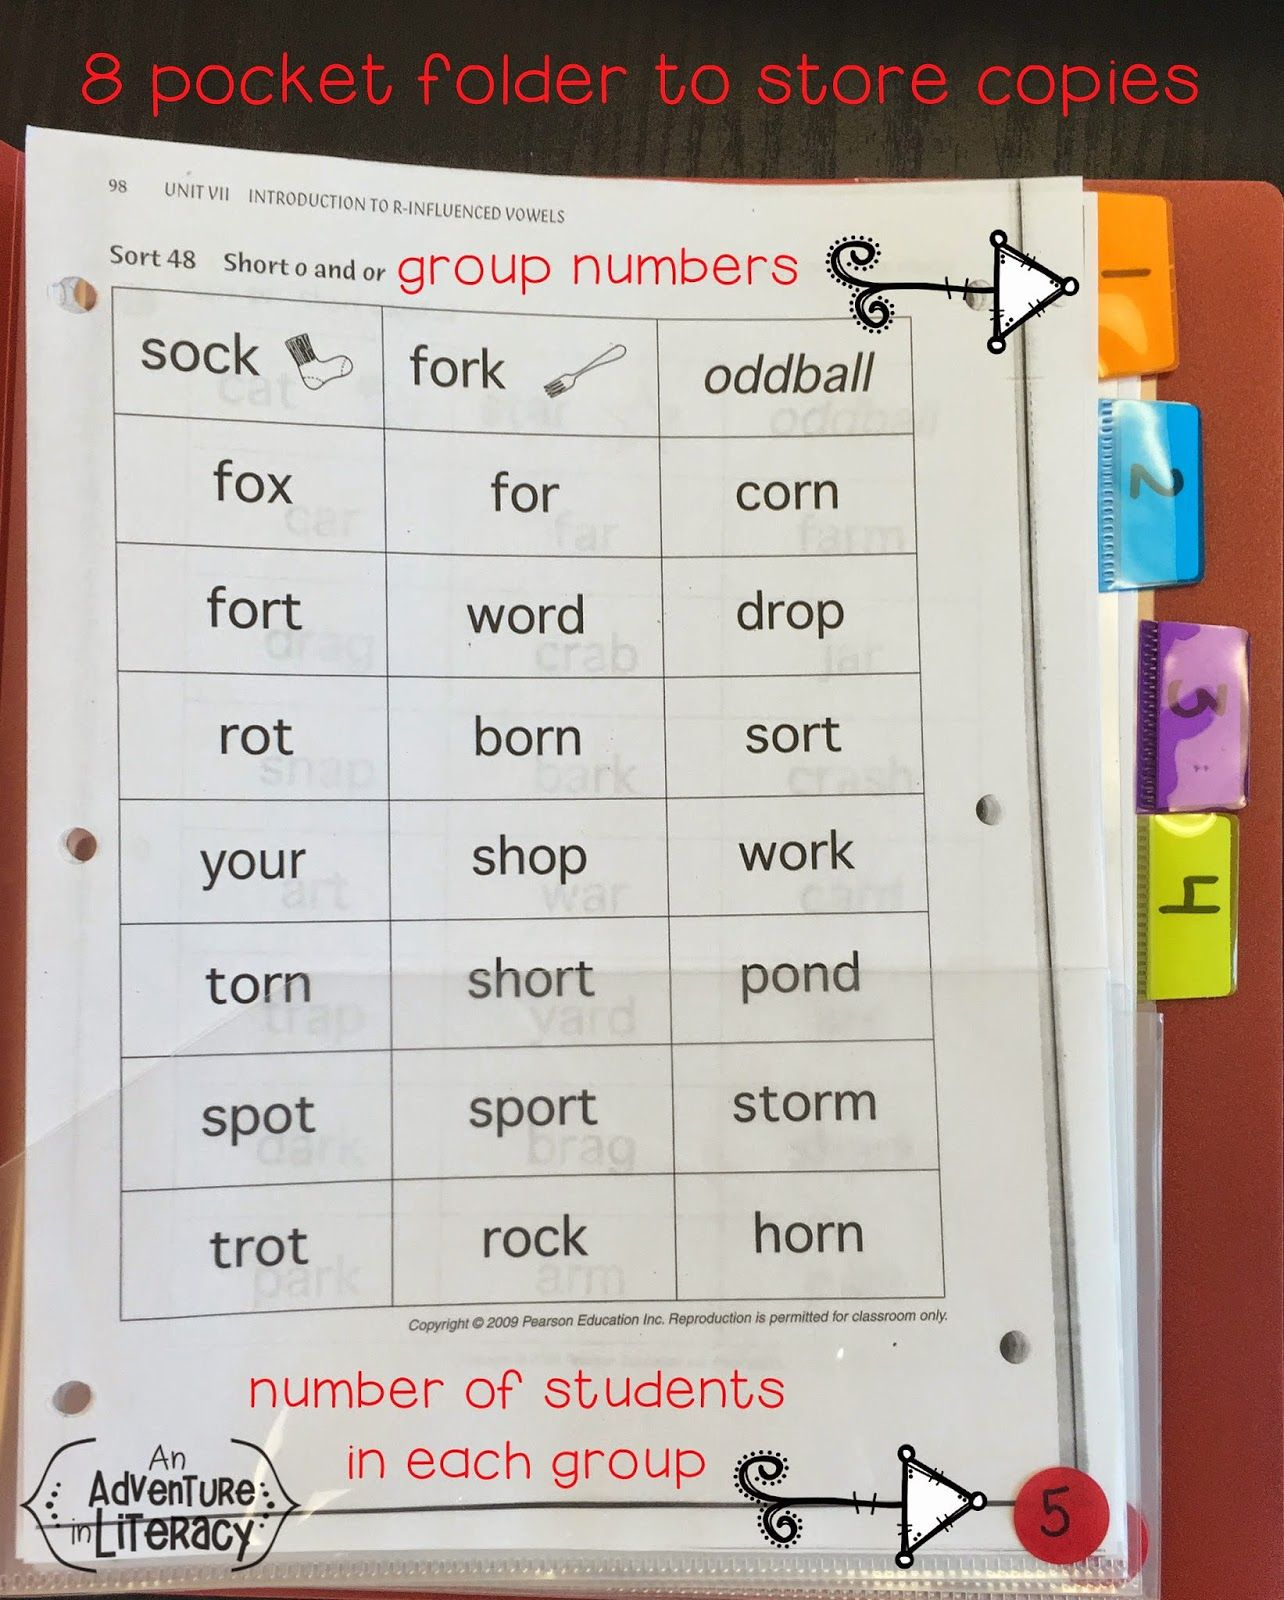 Organizing Words Their Way Materials